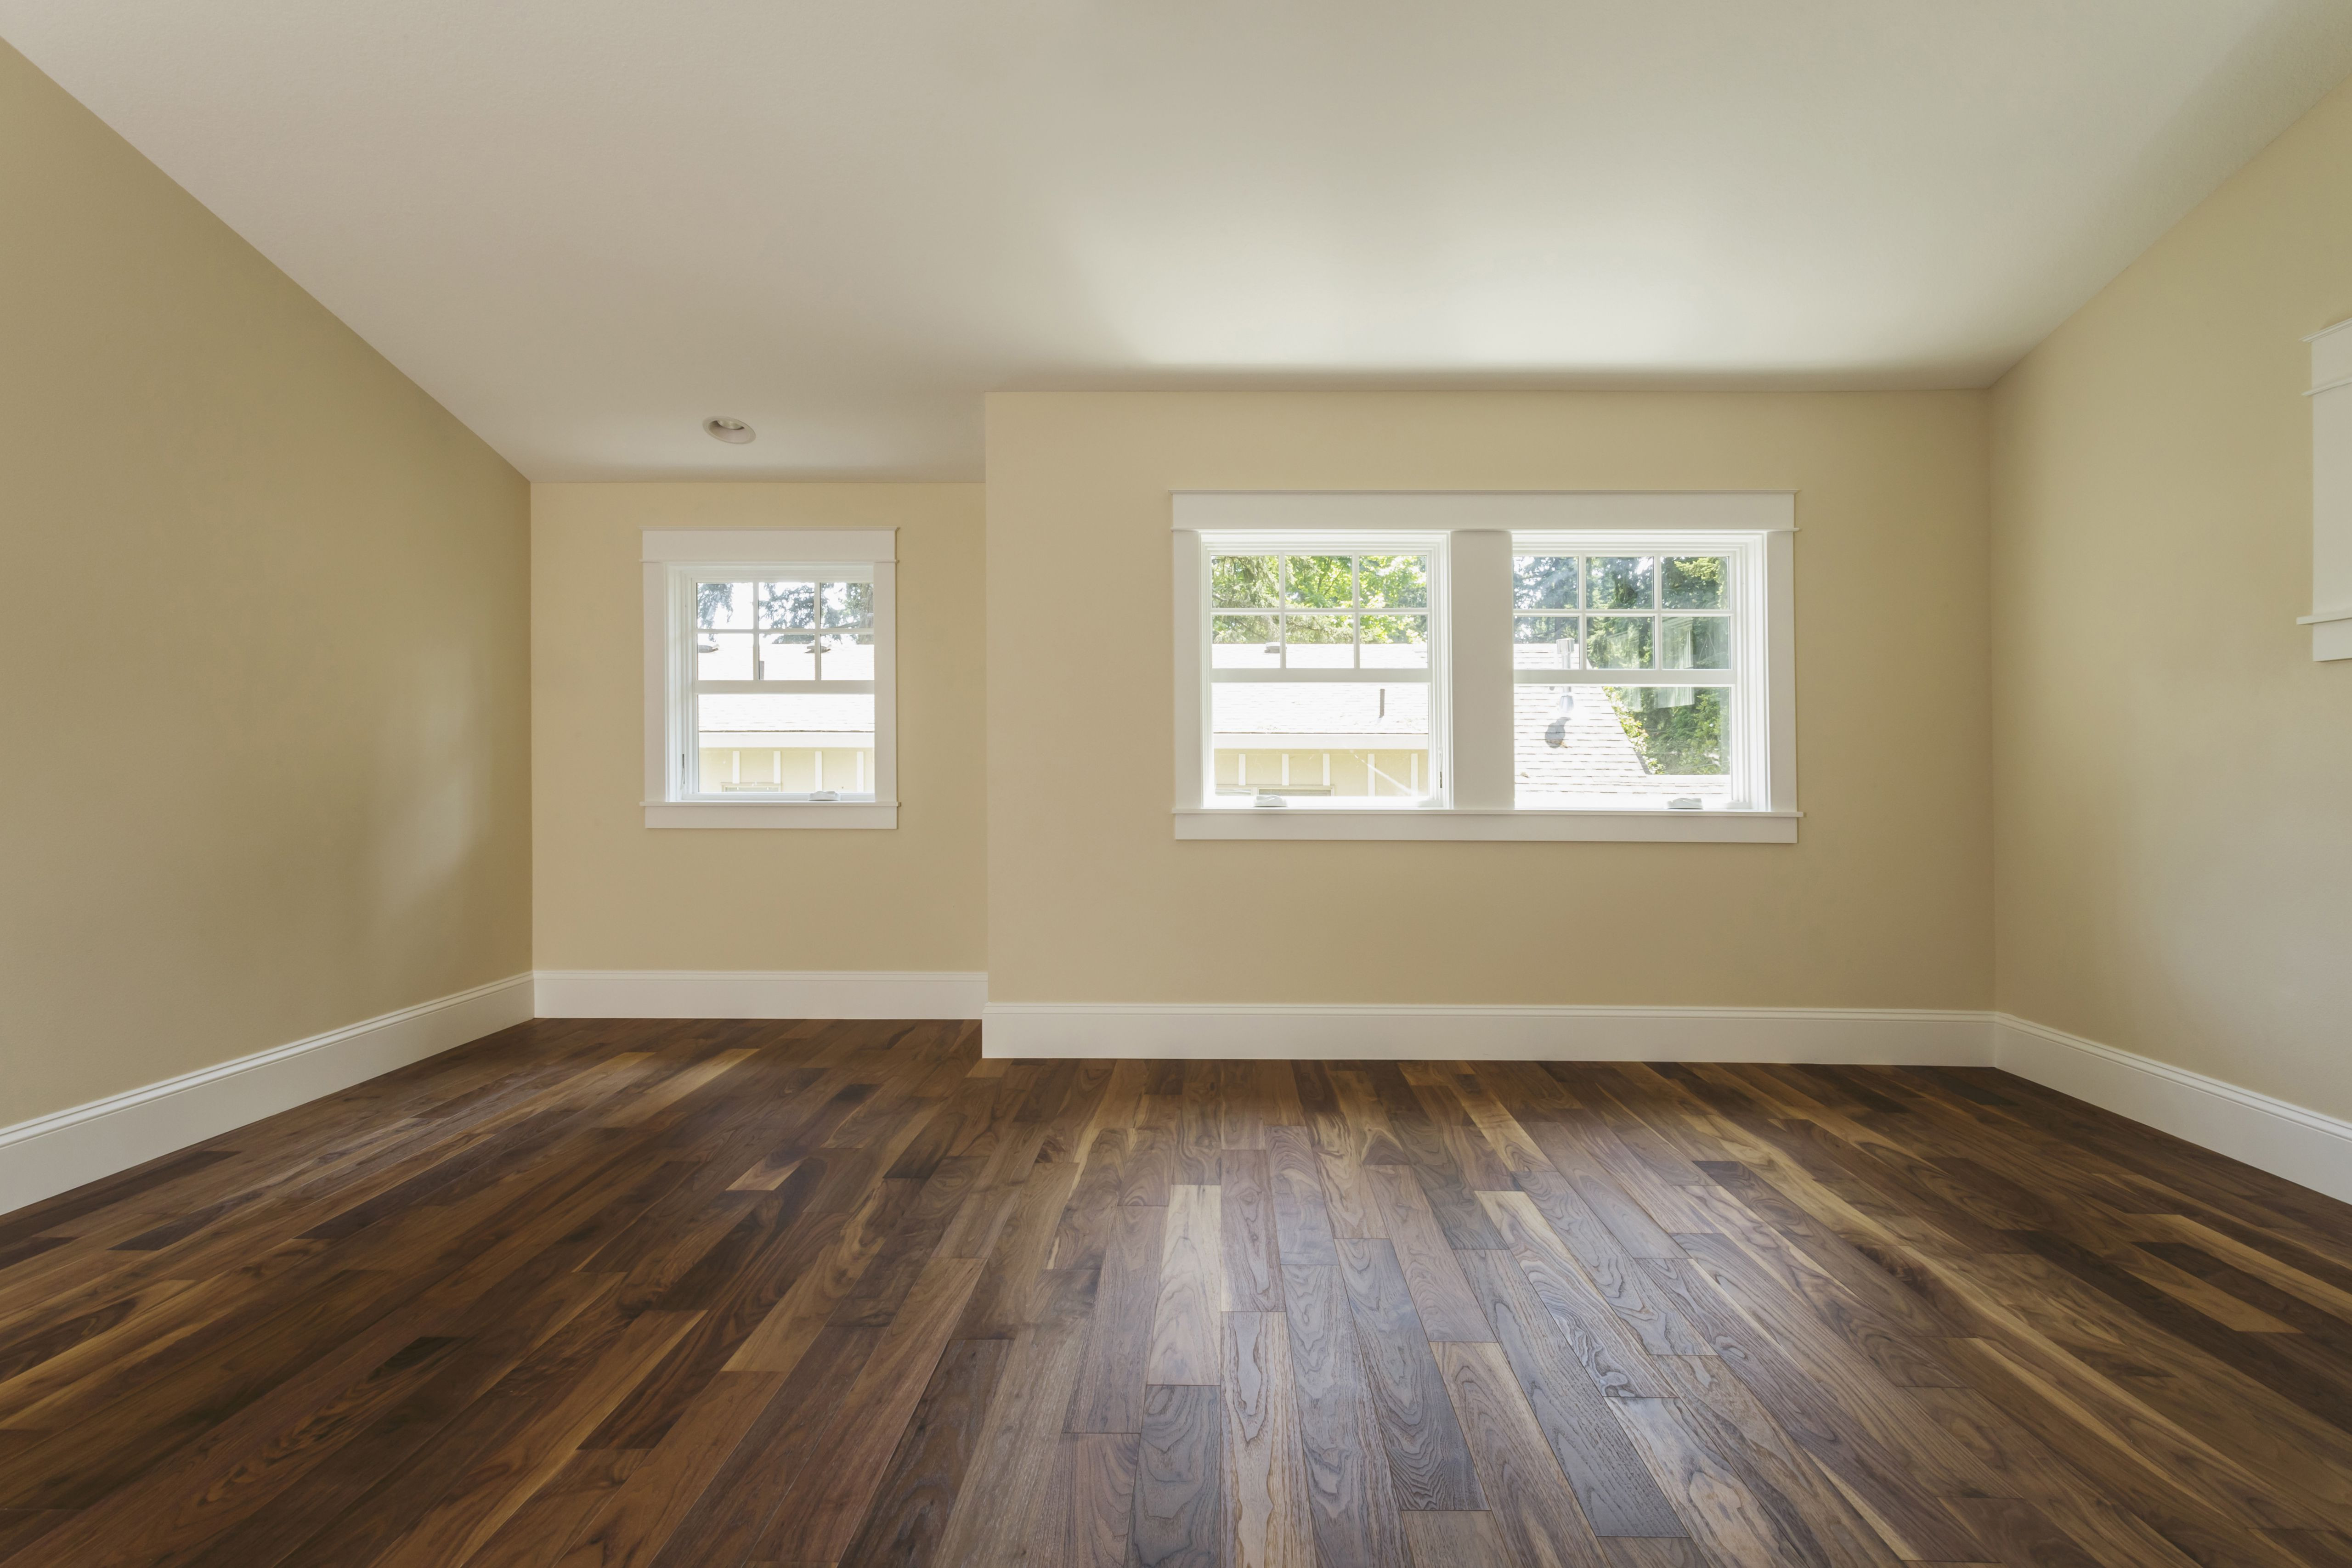 pictures of hardwood floors running different directions of its easy and fast to install plank vinyl flooring inside wooden floor in empty bedroom 482143001 588bd5f45f9b5874eebd56e9